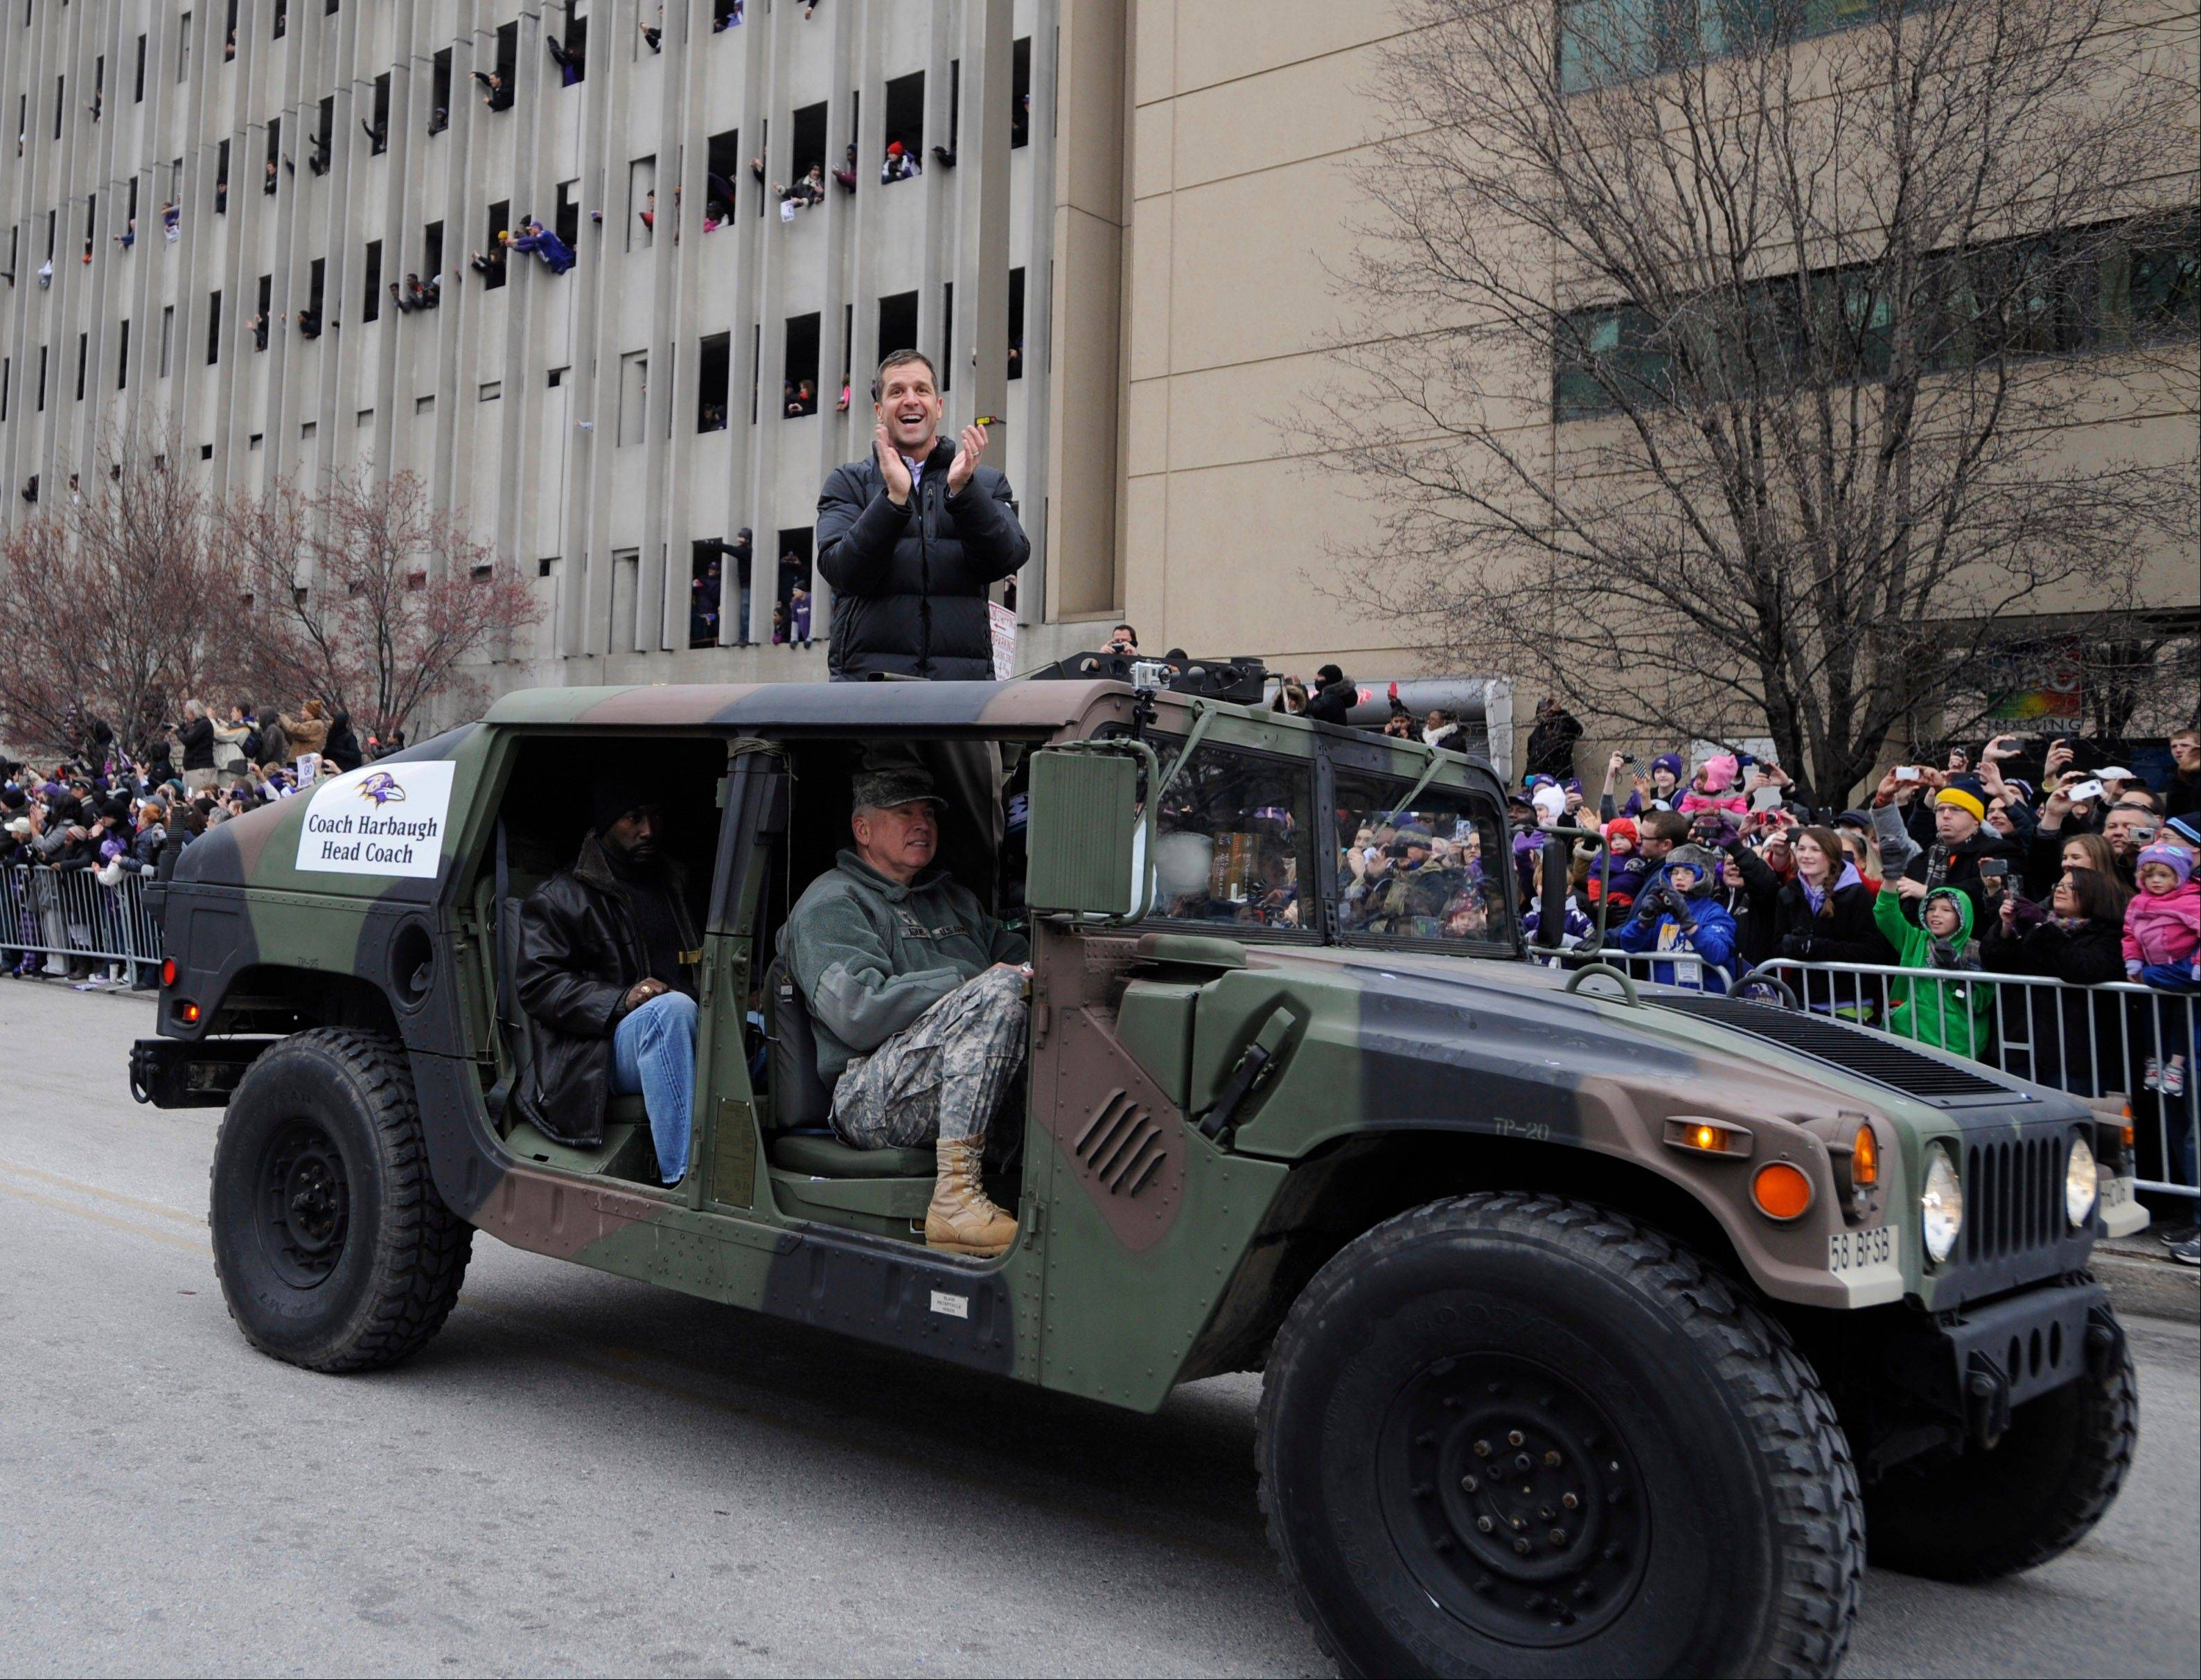 Baltimore Ravens head coach John Harbaugh applauds fans while riding in a Humvee during the Ravens victory parade Tuesday, Feb. 5, 2013, in Baltimore. The Ravens defeated the San Francisco 49ers in NFL football's Super Bowl XLVII 34-31 on Sunday.